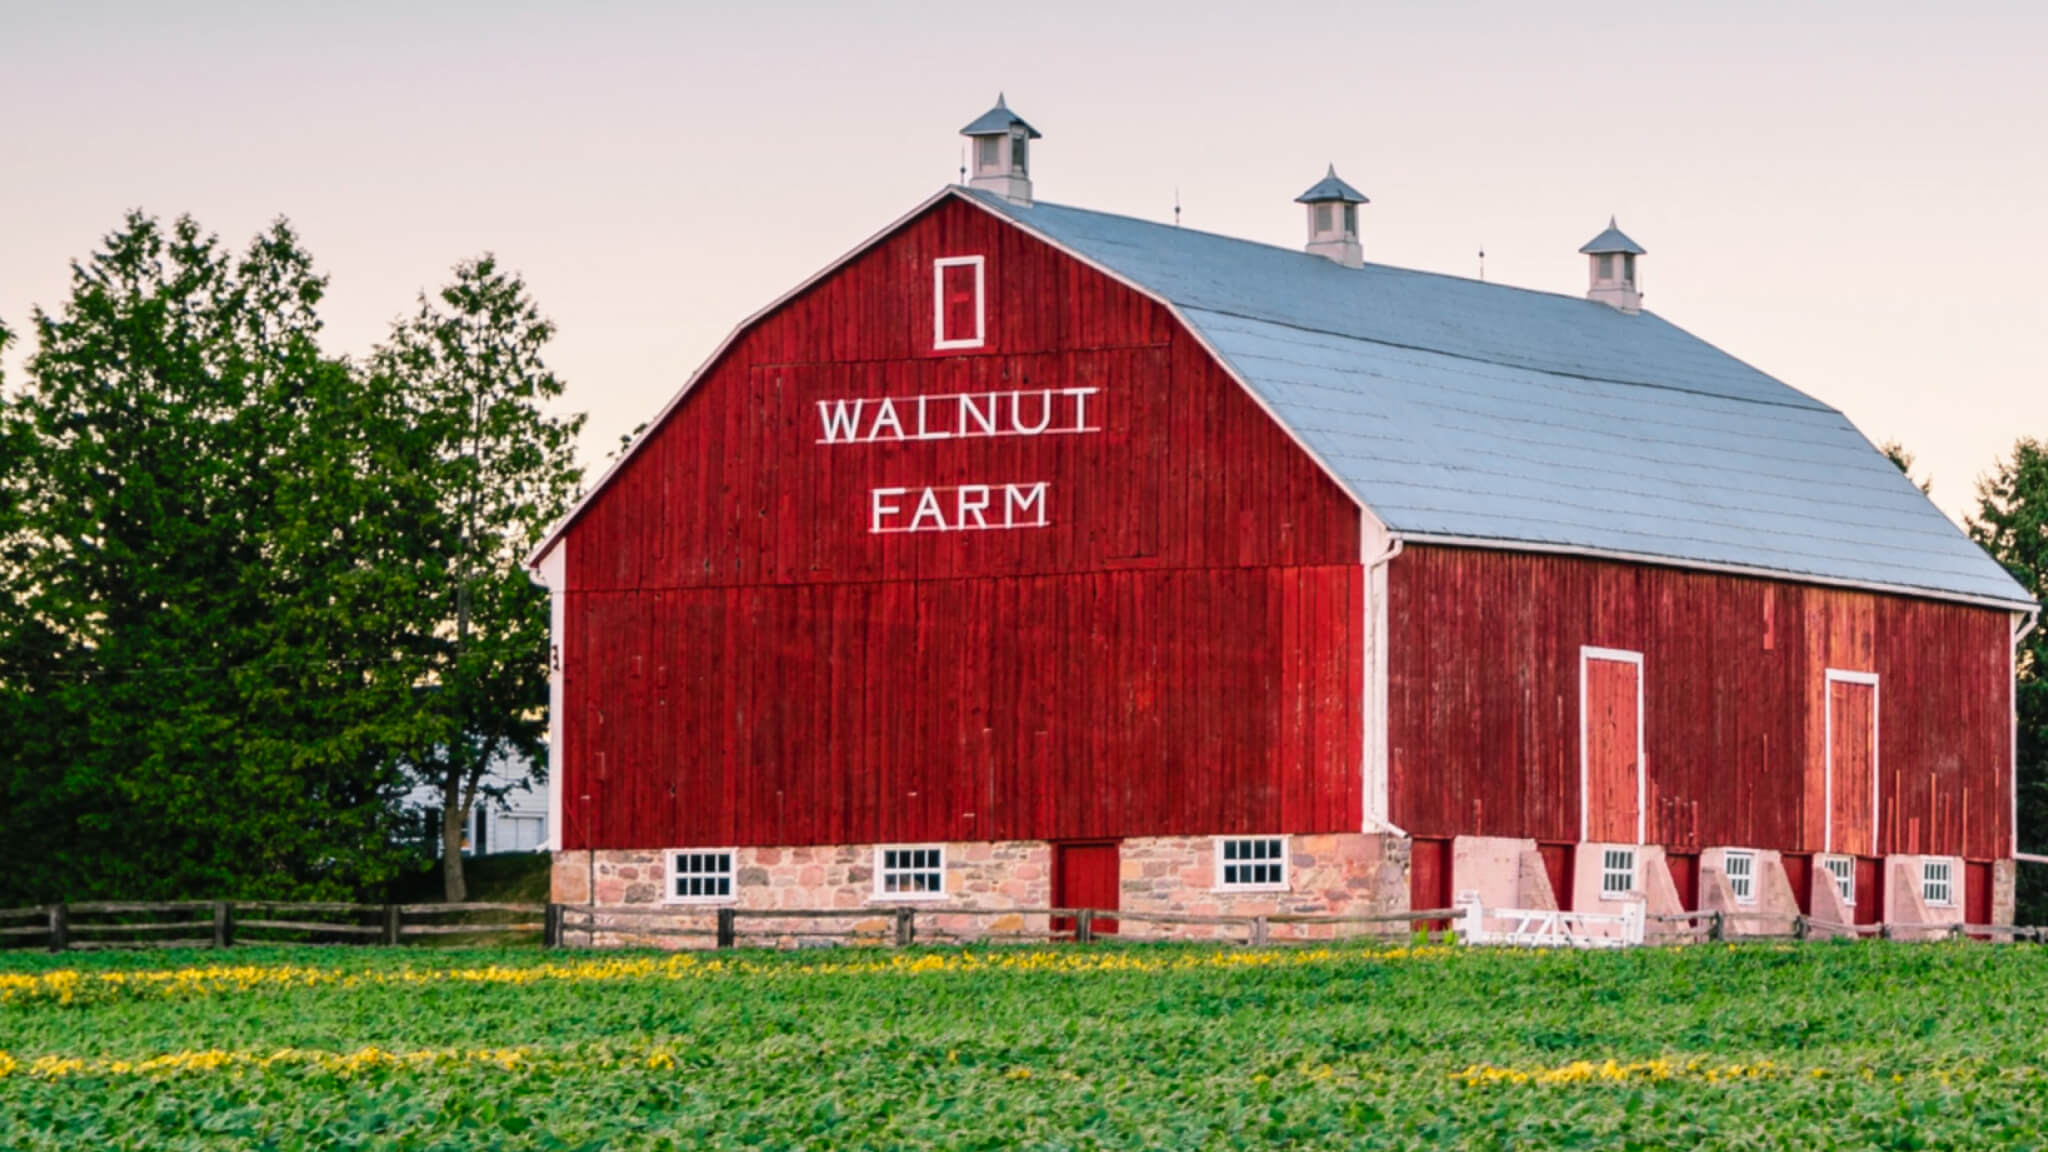 a picture of a red farm building